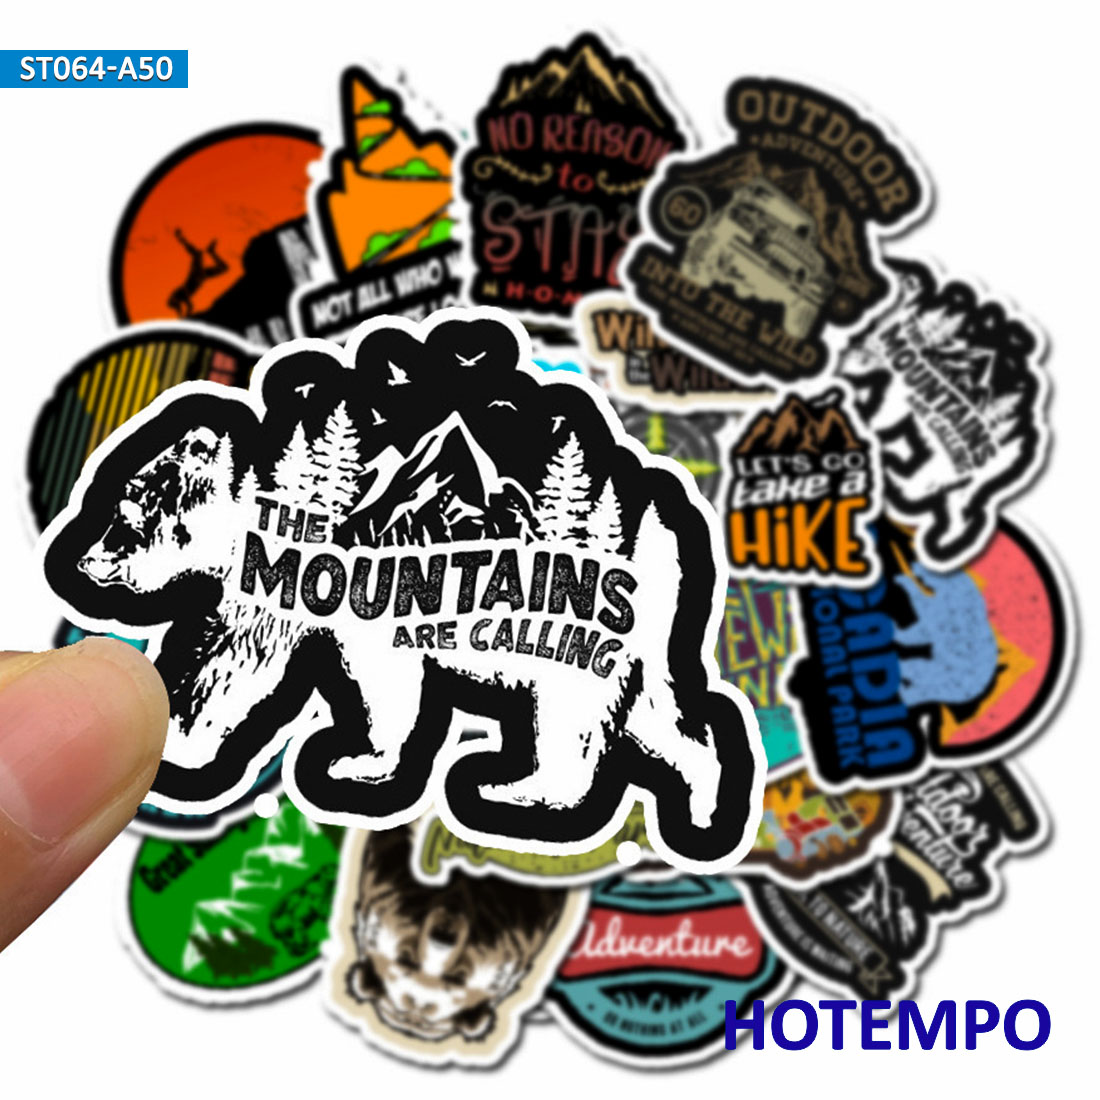 50pcs Outdoor Wild Camping Stickers Outdoor Adventure Climbing Travel Landscape Waterproof Sticker For Mobile Phone Laptop Decal